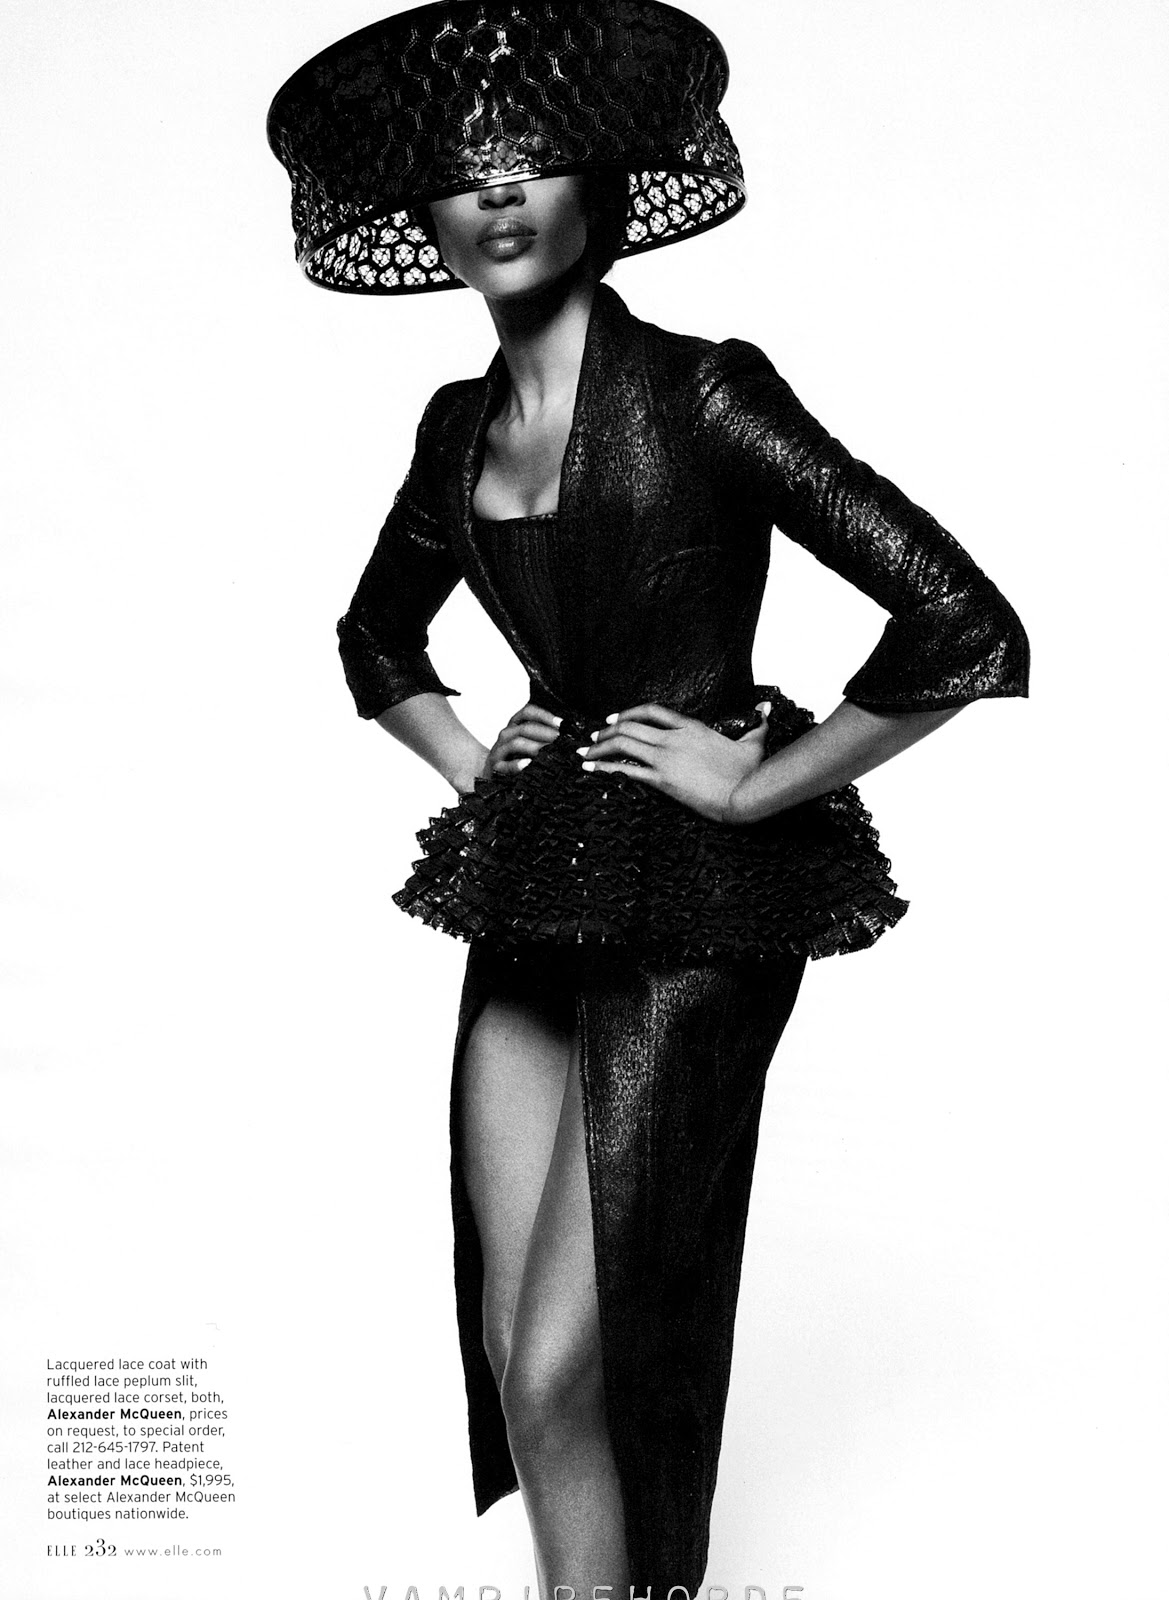 http://3.bp.blogspot.com/-kZi5s2UtEjk/UOqc8akl9KI/AAAAAAAC340/ZwvZ9KByxEQ/s1600/fashion_scans_remastered-naomi_campbell-elle_usa-february_2013-scanned_by_vampirehorde-hq-1.jpg